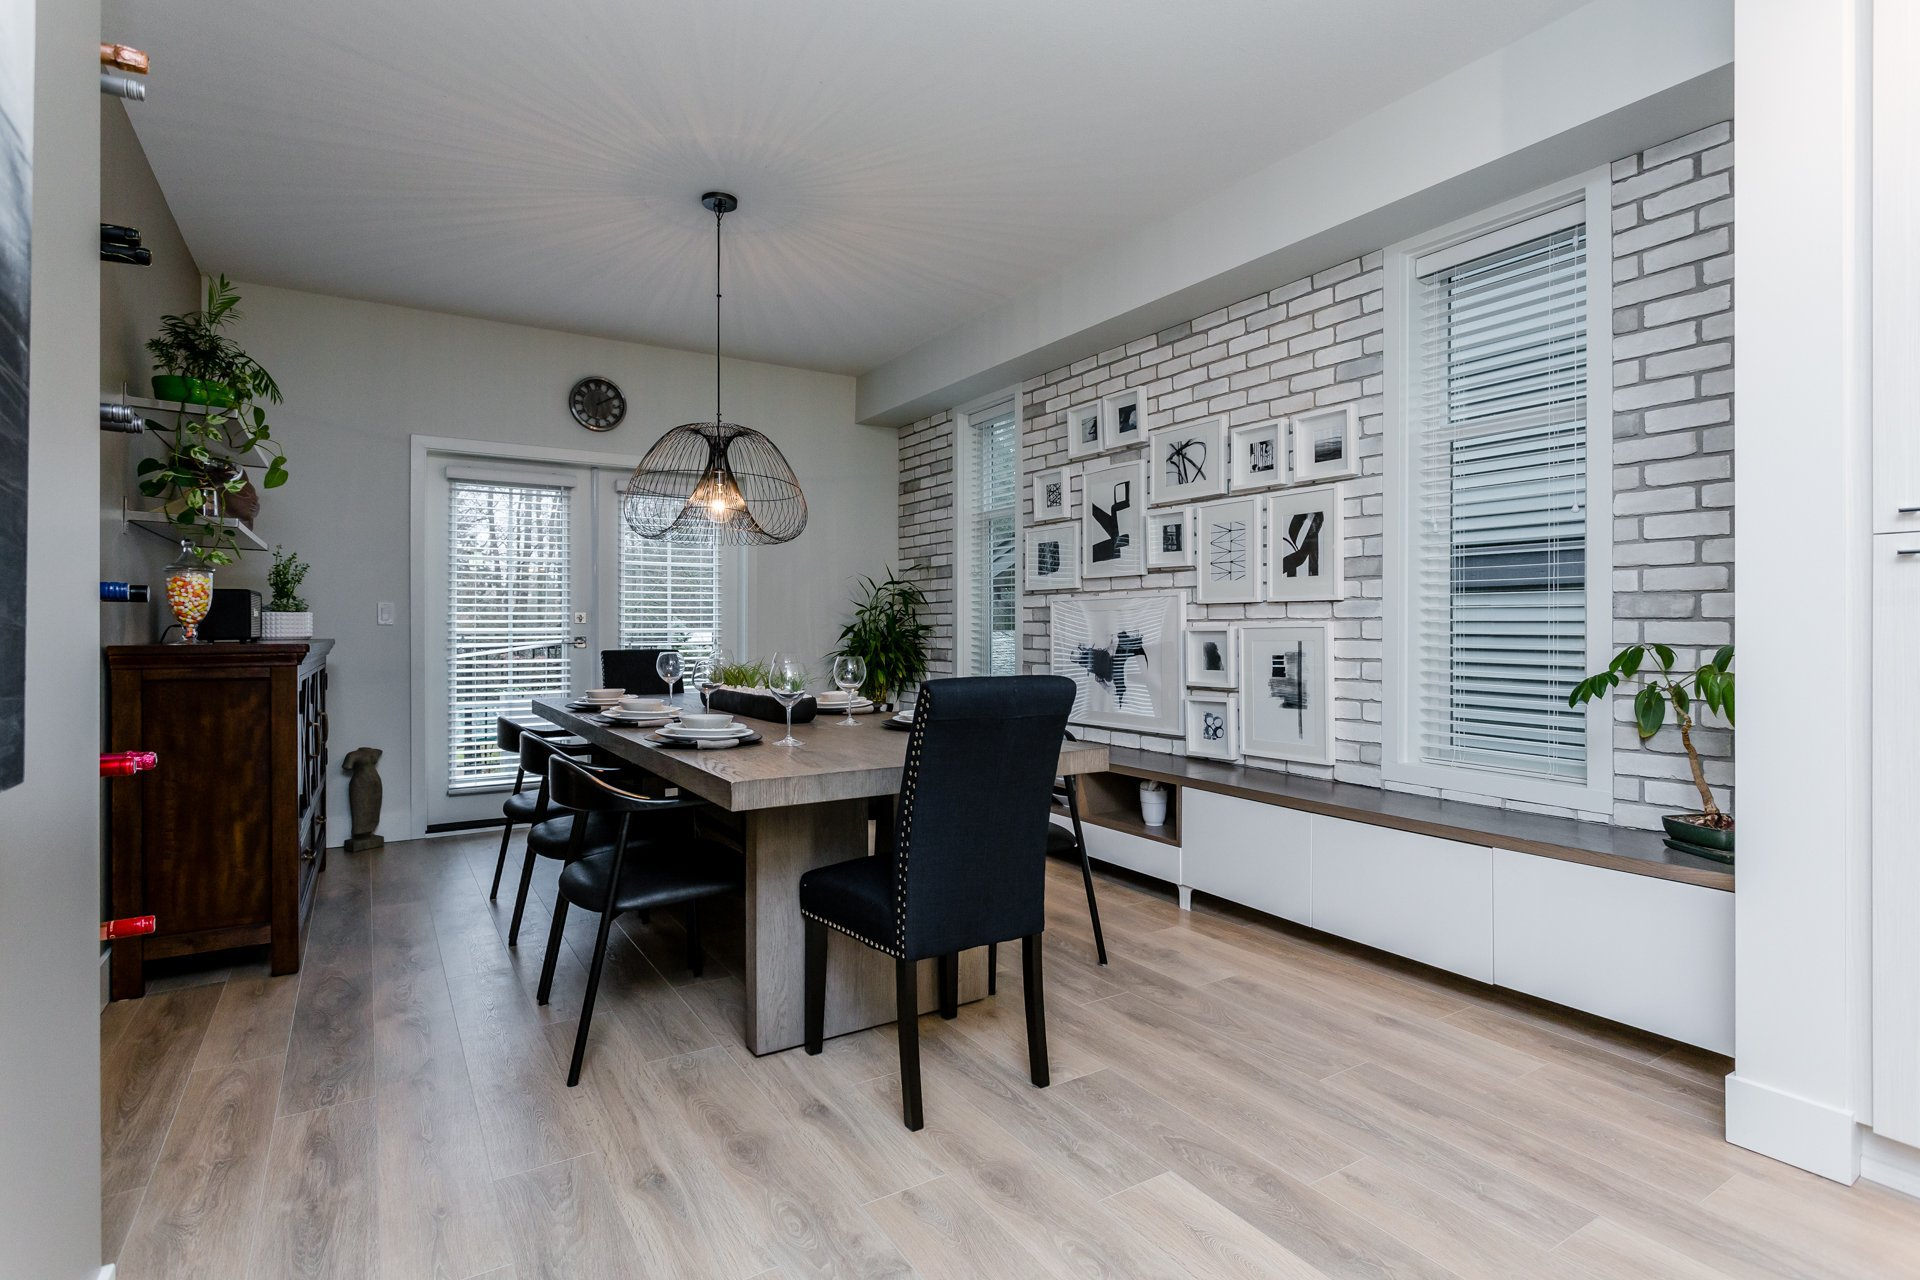 """Photo 14: Photos: 8 8217 204B Street in Langley: Willoughby Heights Townhouse for sale in """"EVERLY GREEN"""" : MLS®# R2236678"""